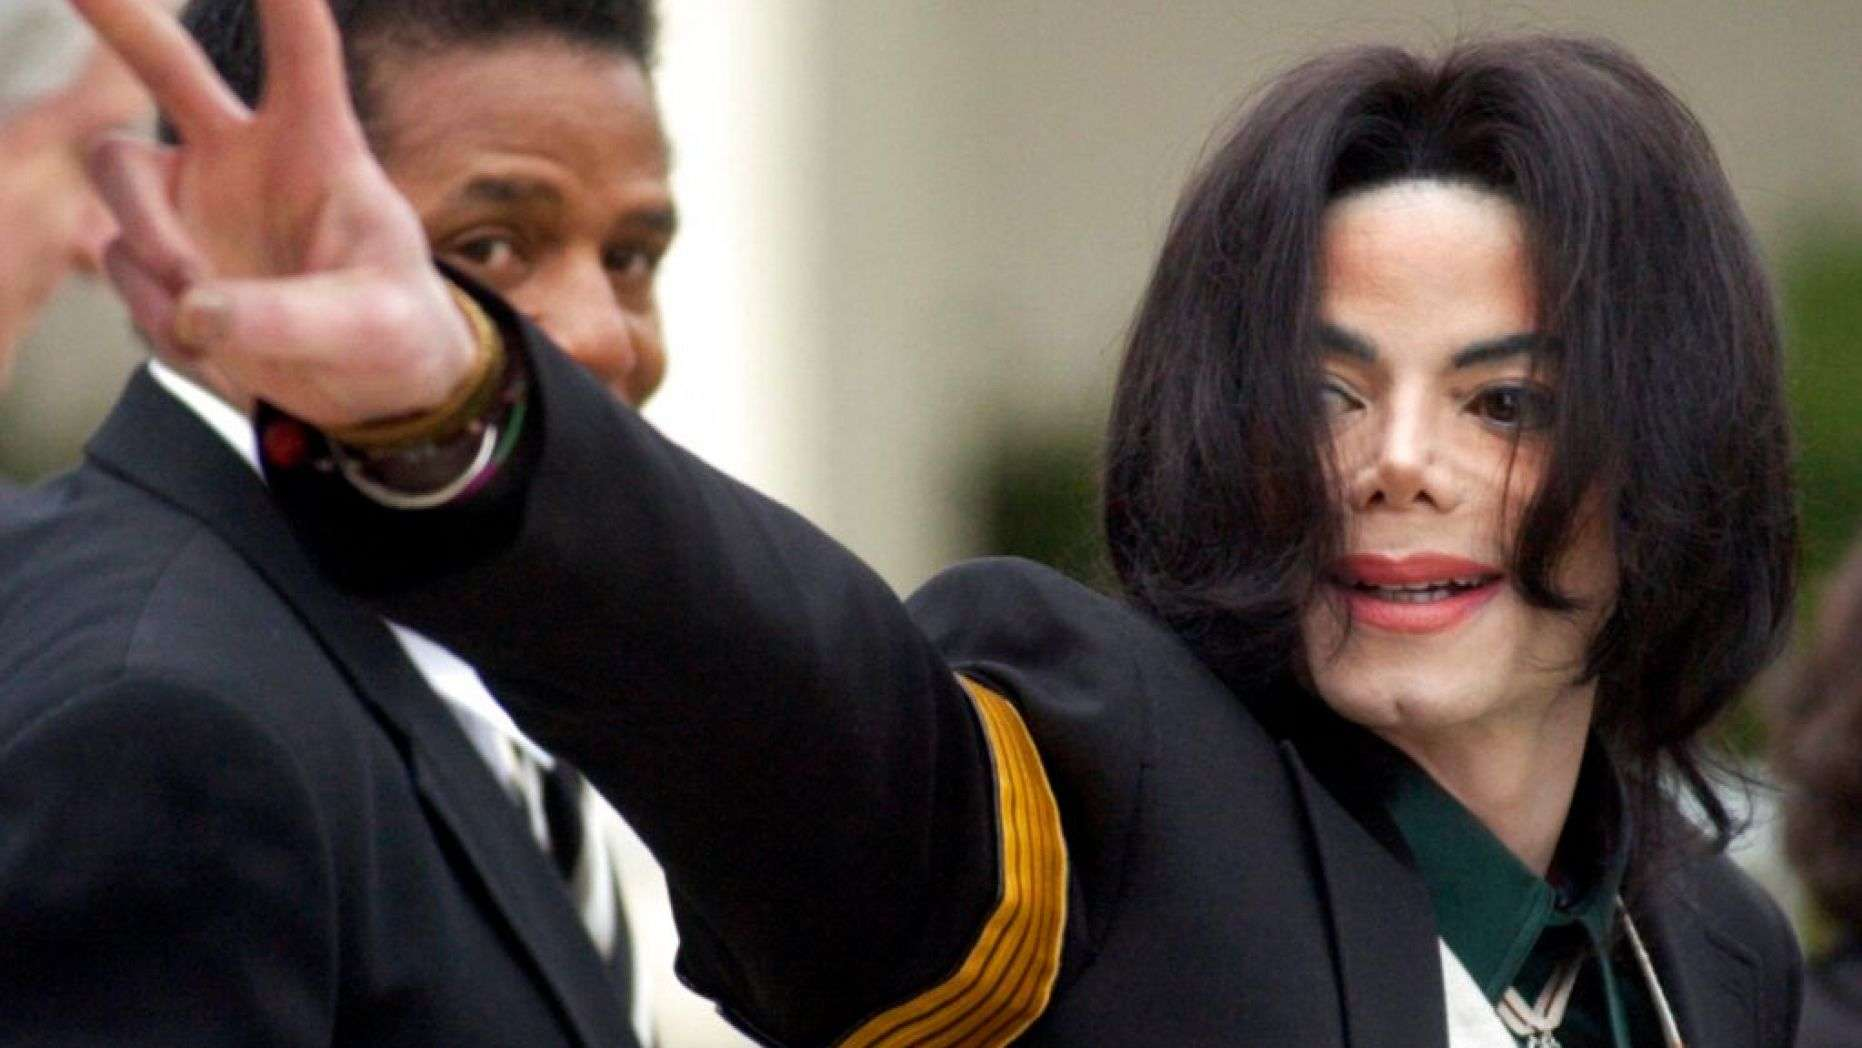 Oprah Winfrey to interview Michael Jackson's accusers: report